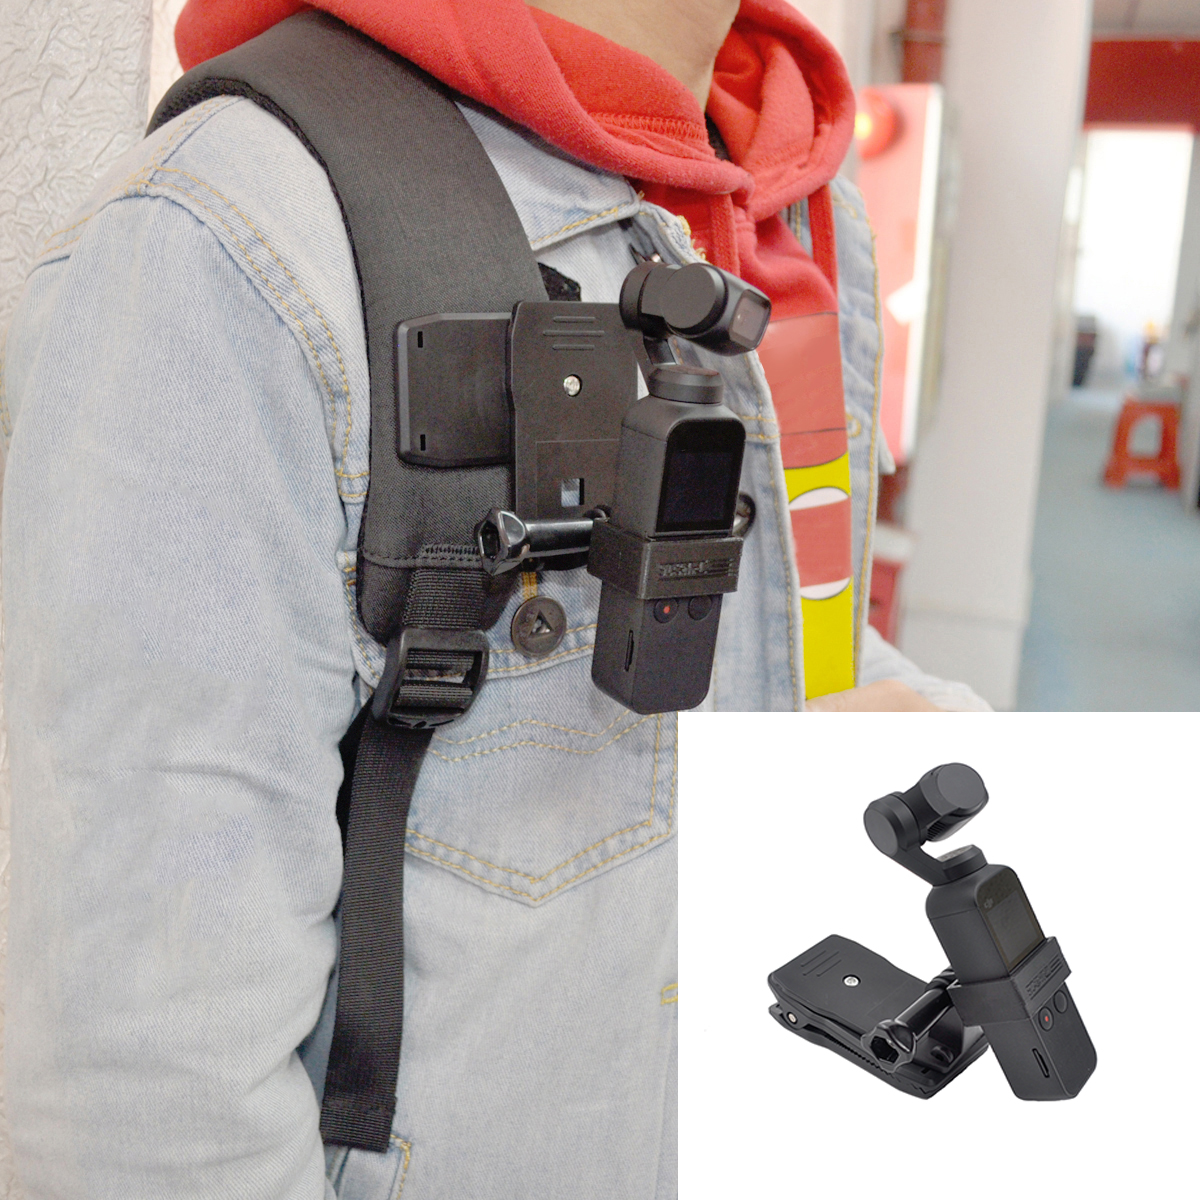 STARTRC Backpack Clip for DJI OSMO Pocket Handheld Stand Expansion Bracket for DJI OSMO Pocket Handheld Gimbal Accessories-in Gimbal Accessories from Consumer Electronics on Aliexpress.com | Alibaba Group